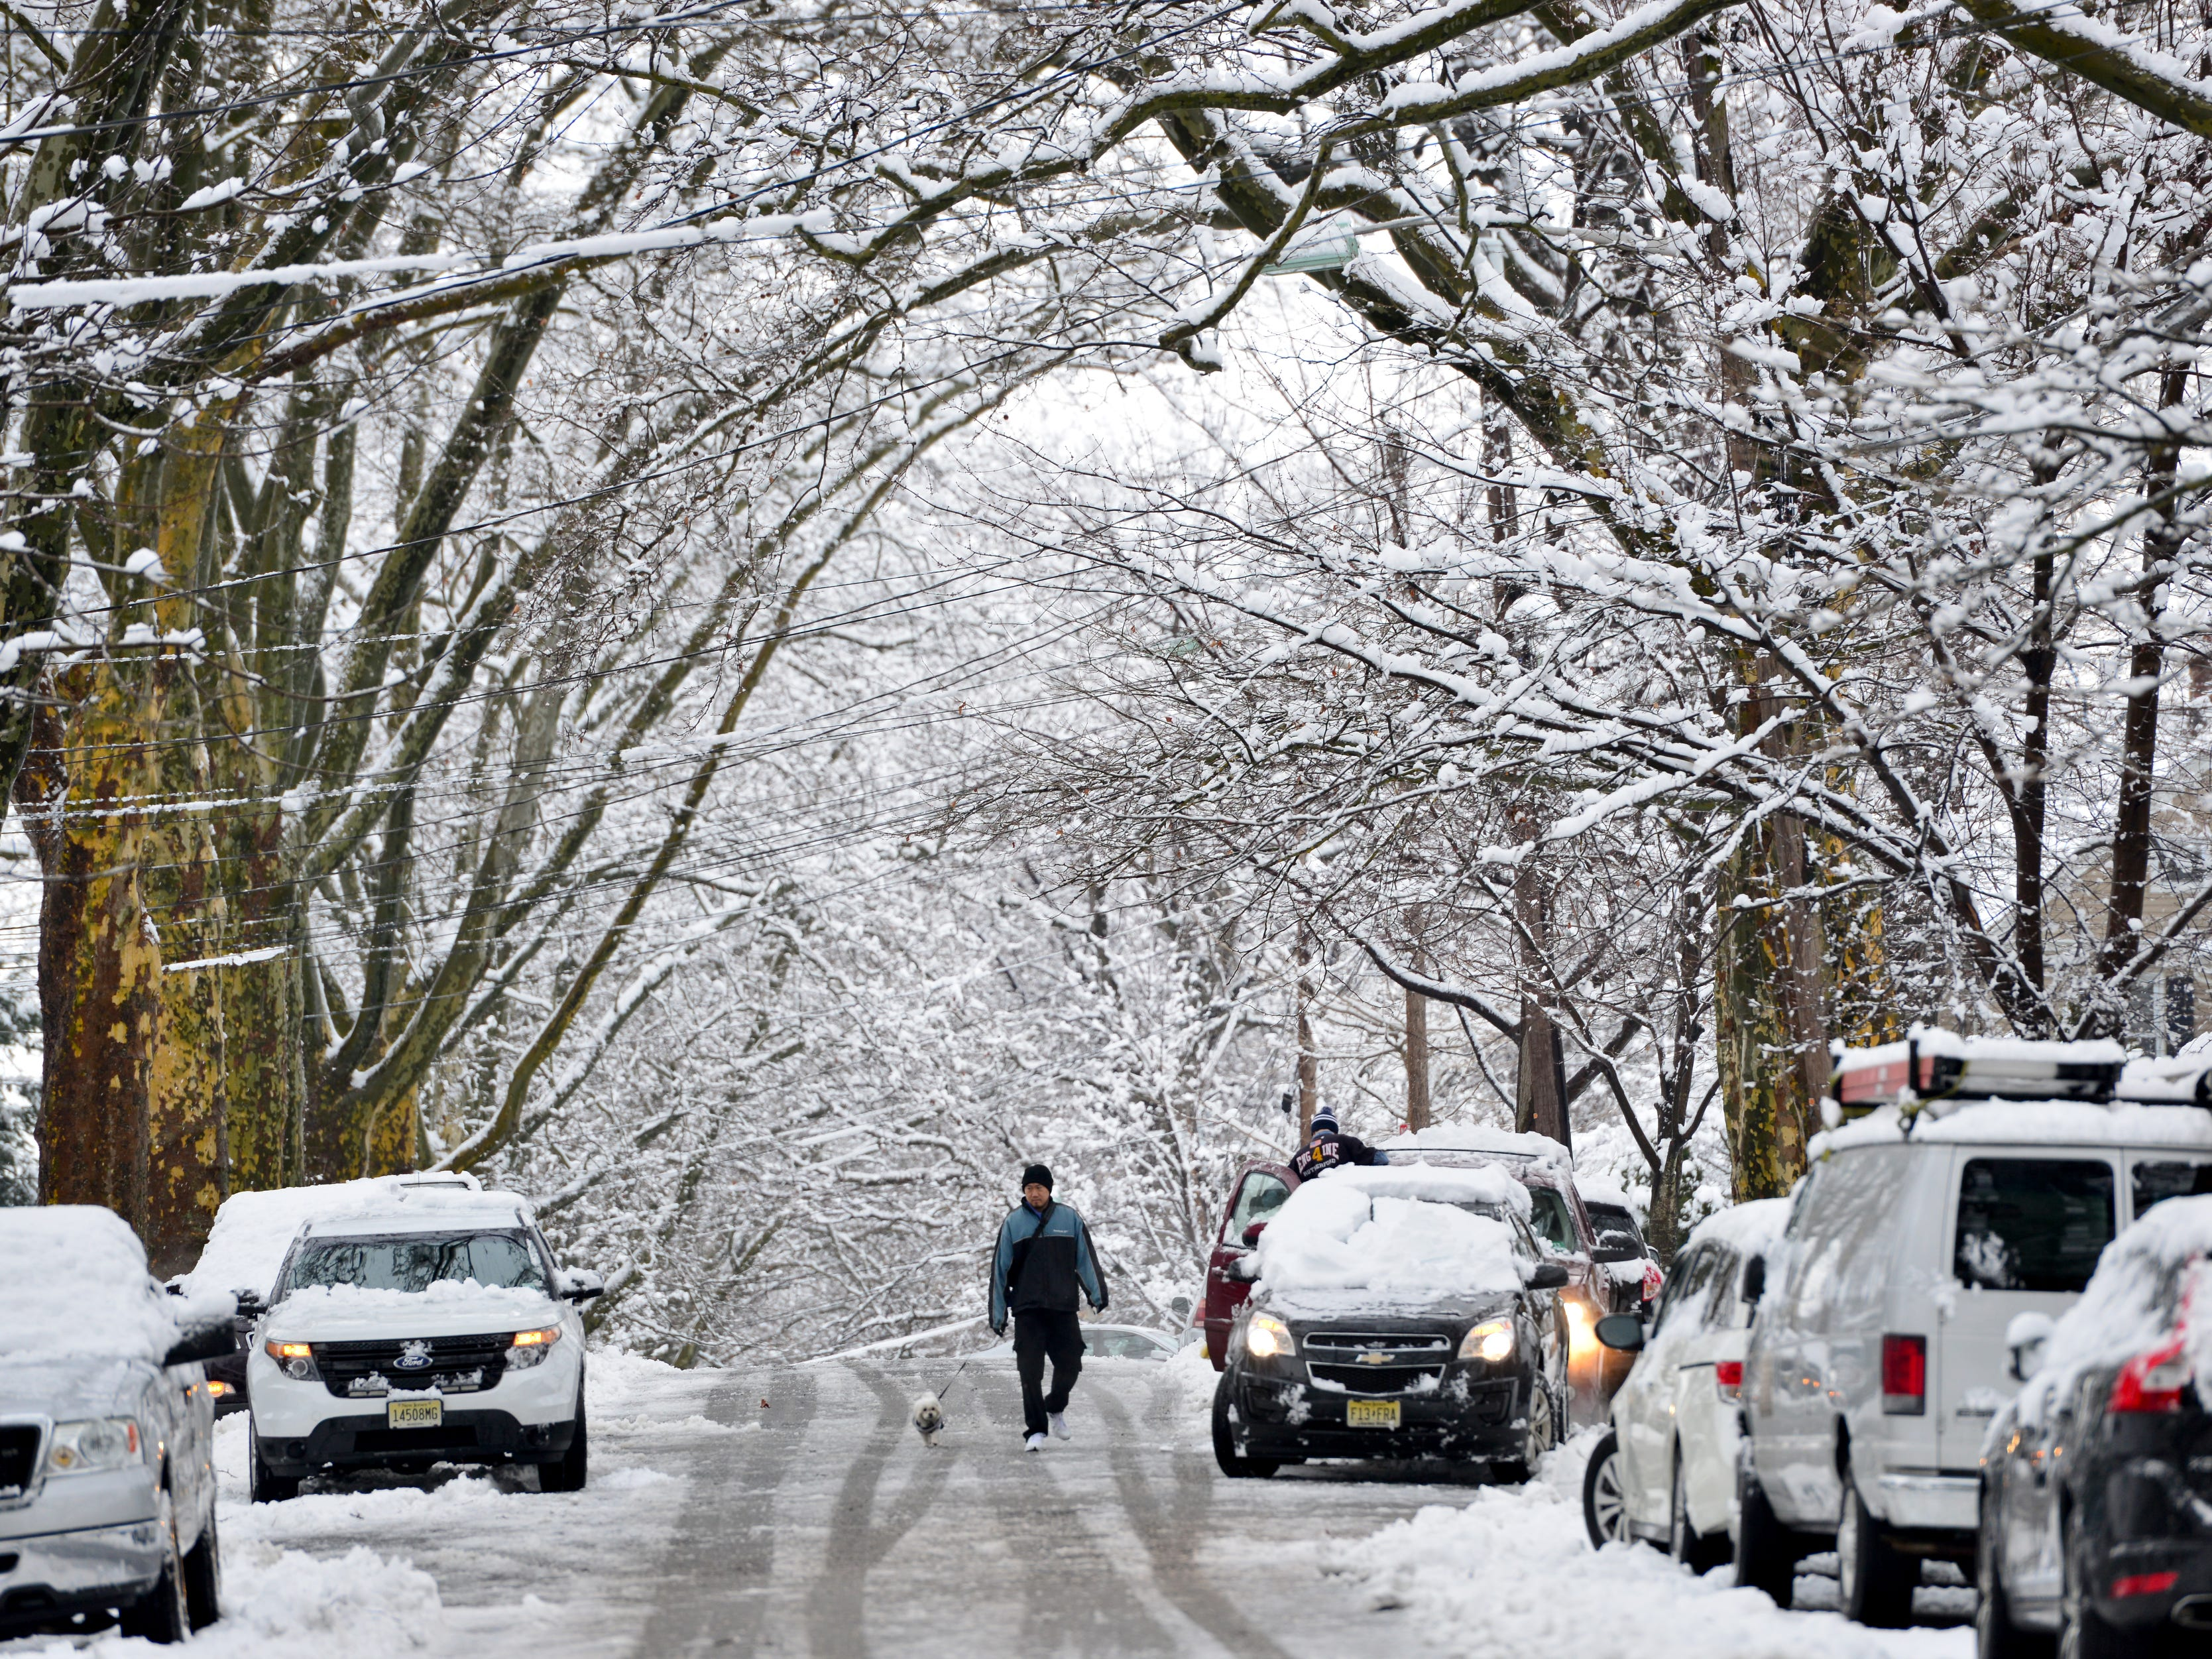 A man walks his dog down a snow covered street in Rutherford on Monday morning March 4, 2019.